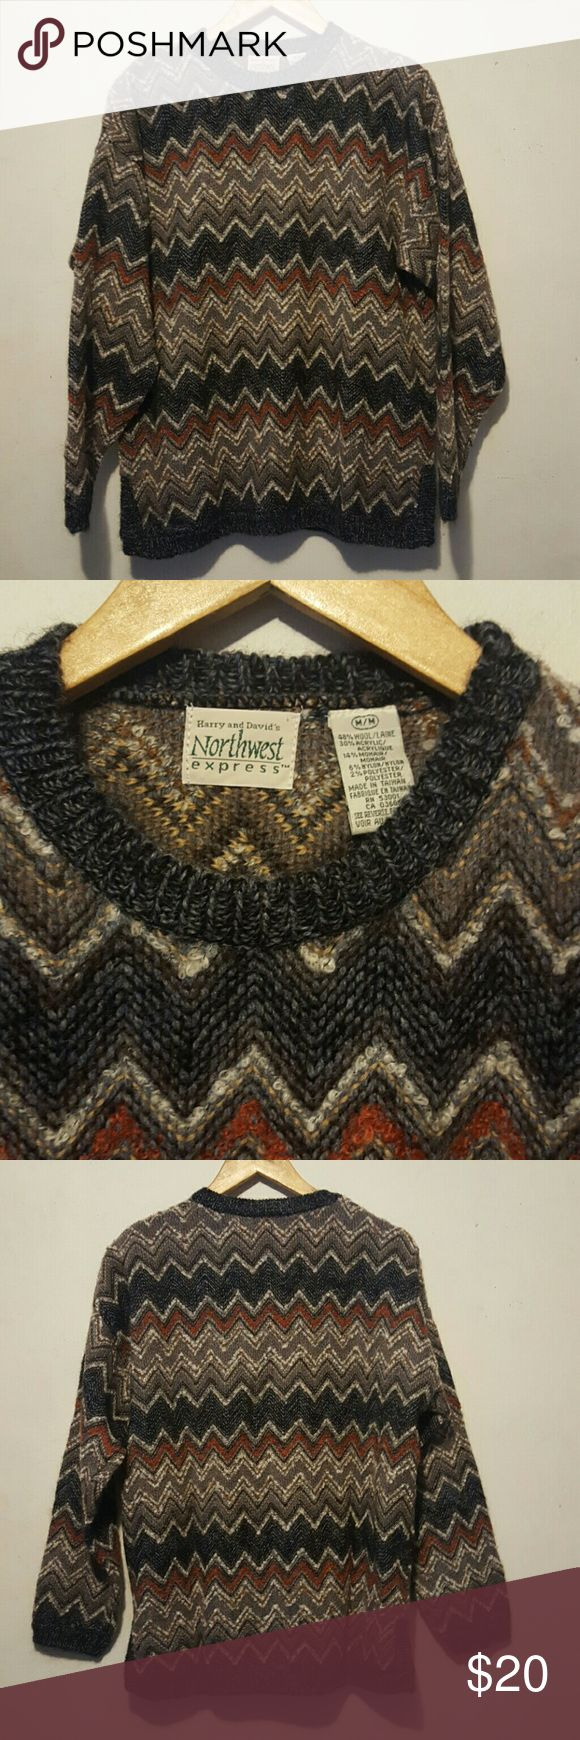 Hipster sweater Funky, cool, vintage, hipster style whool sweater.  Perf condition. Unique. Cute with leggings or skinny jeans. Unisex. Wear on crisp nights, browsing the art galleries :) Vintage Sweaters Crew & Scoop Necks